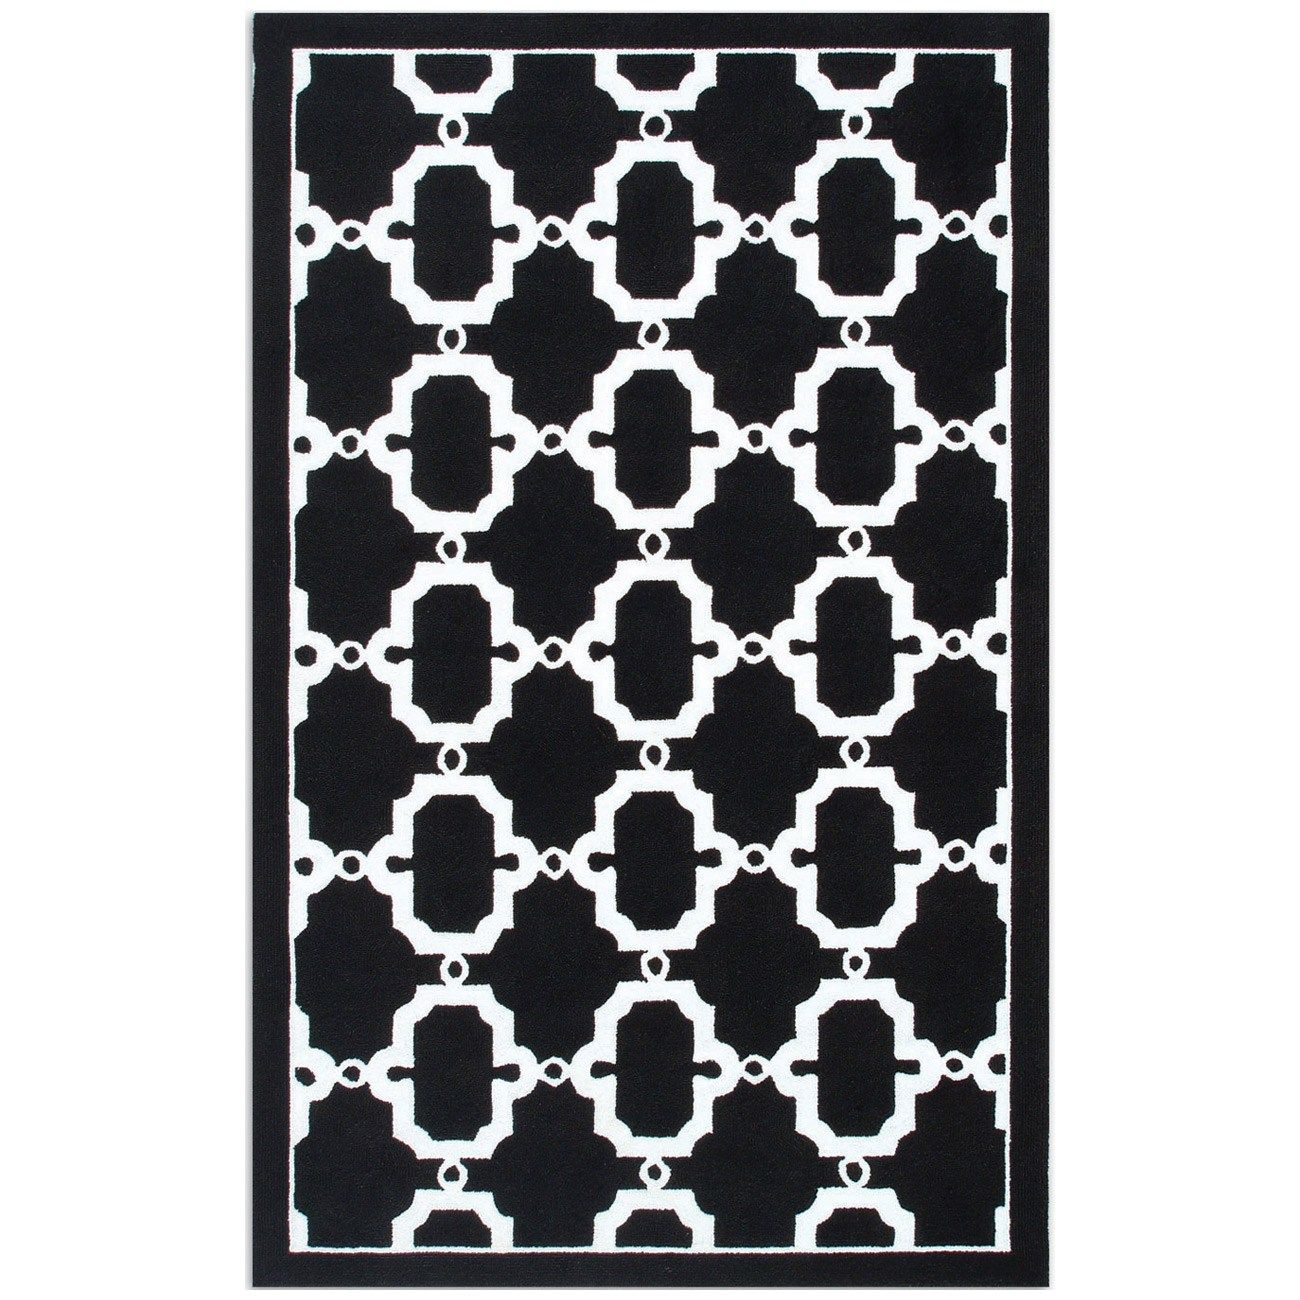 Resort Hyperion Black White Rug